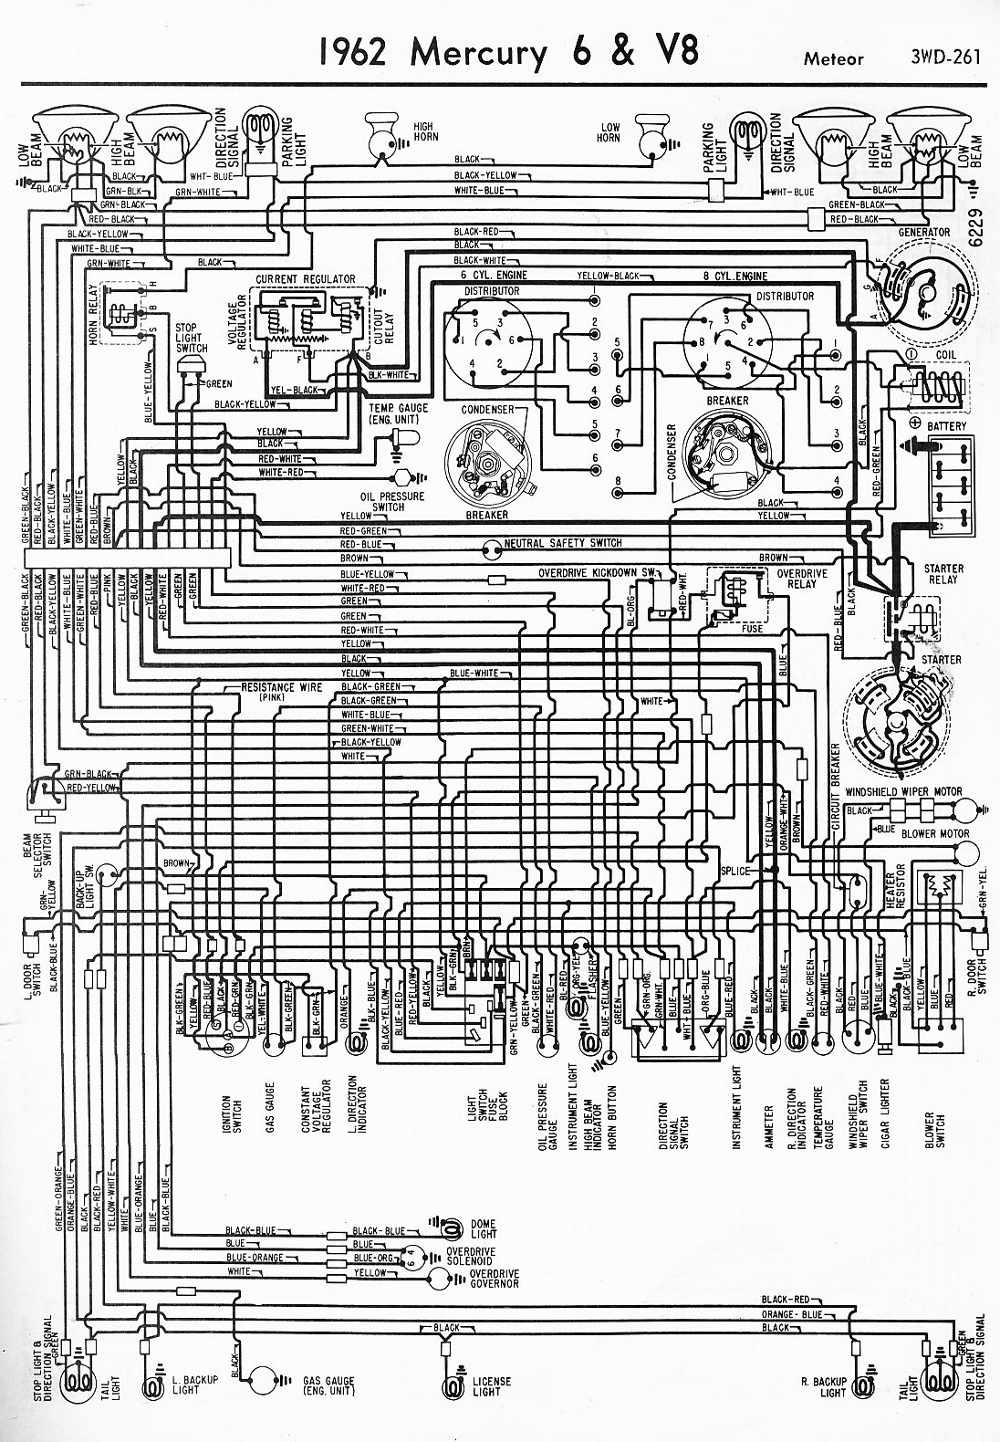 wiring diagrams 911 december 2011 rh wiringdiagrams911 blogspot com 1962  Mercury Meteor 1963 Mercury Monterey